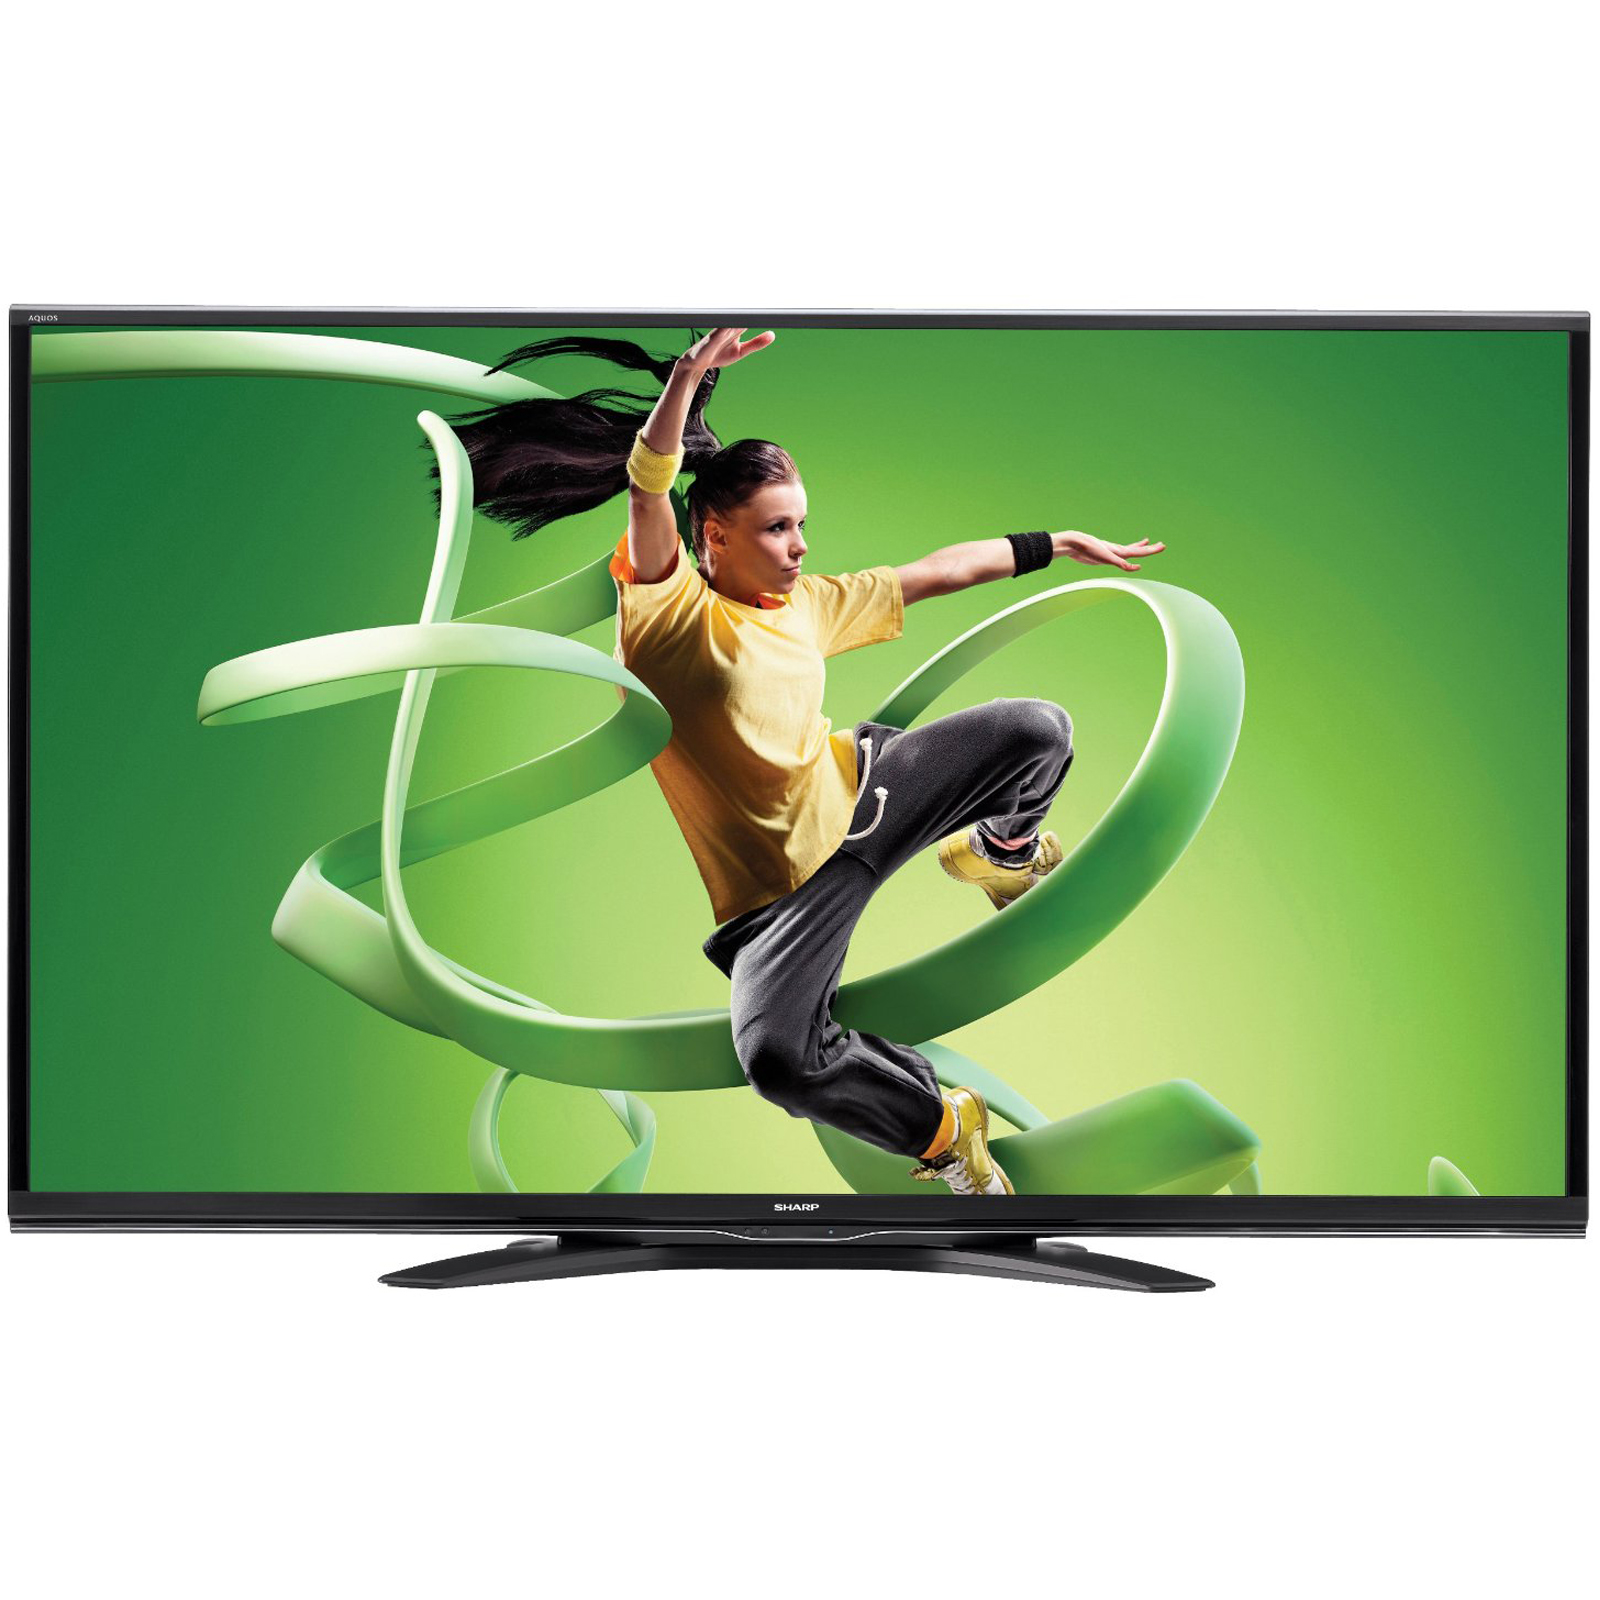 "Sharp 60"" Class AQUOS Q Series 1080p 240Hz LED Smart HDTV - LC-60EQ10U"